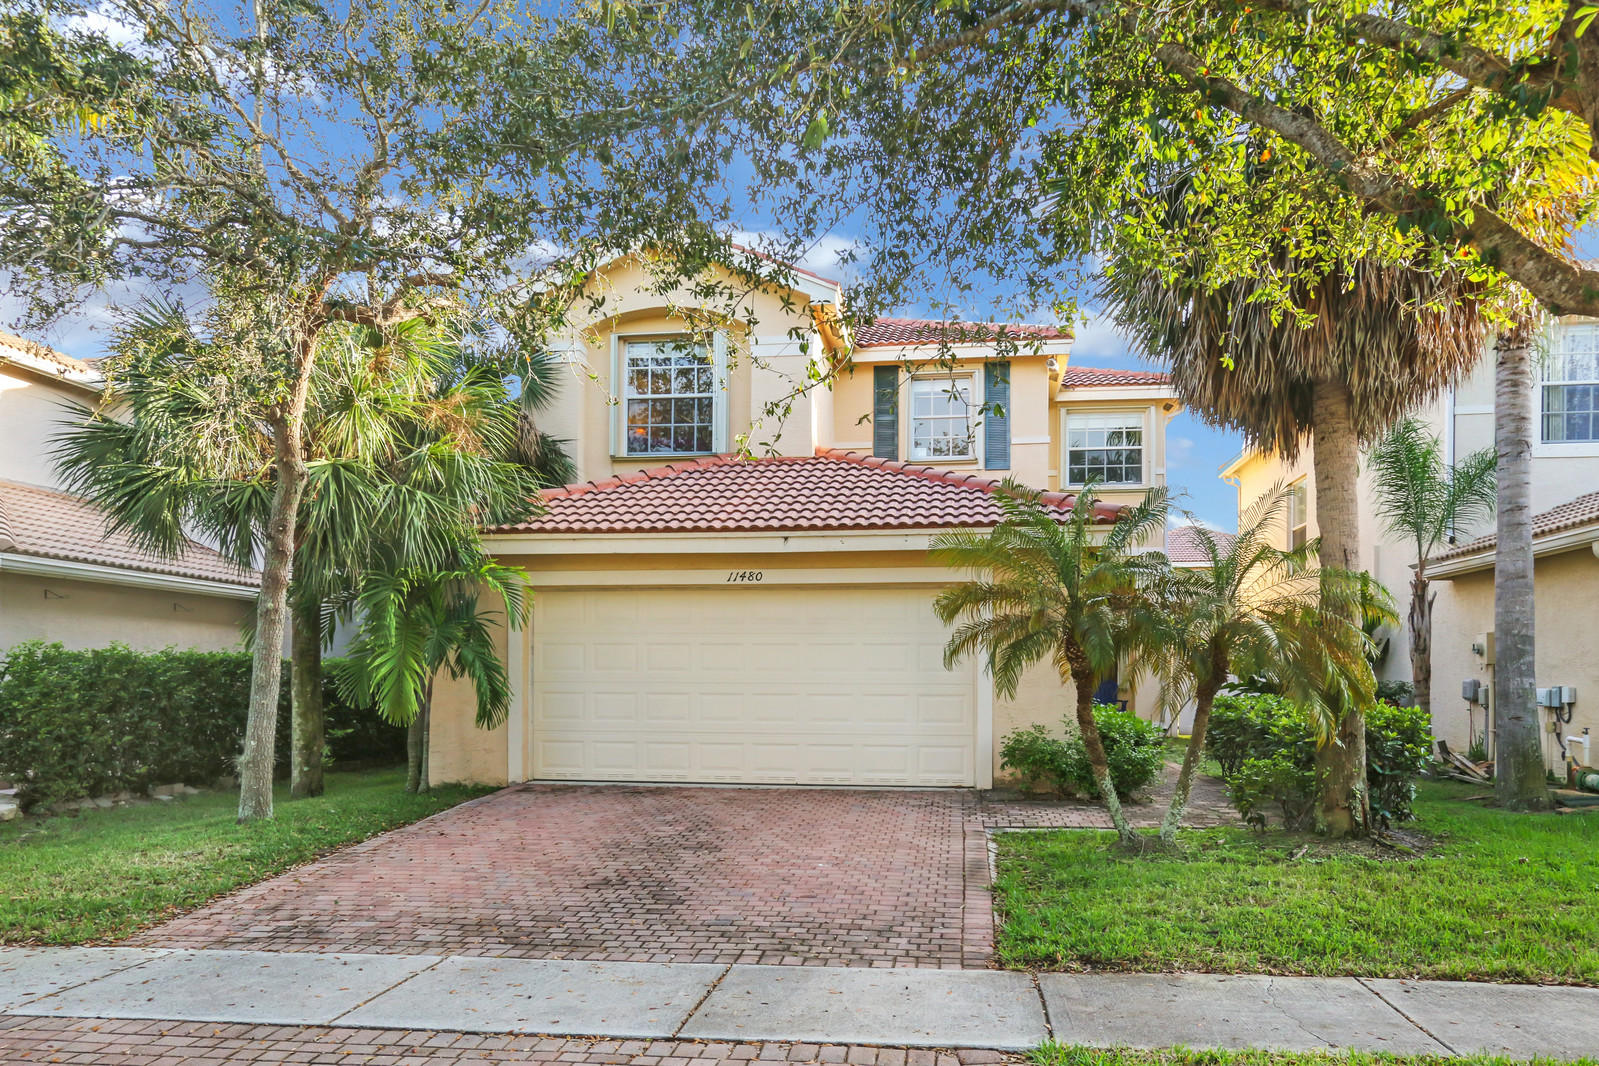 11480 Blue Violet Lane Royal Palm Beach, FL 33411